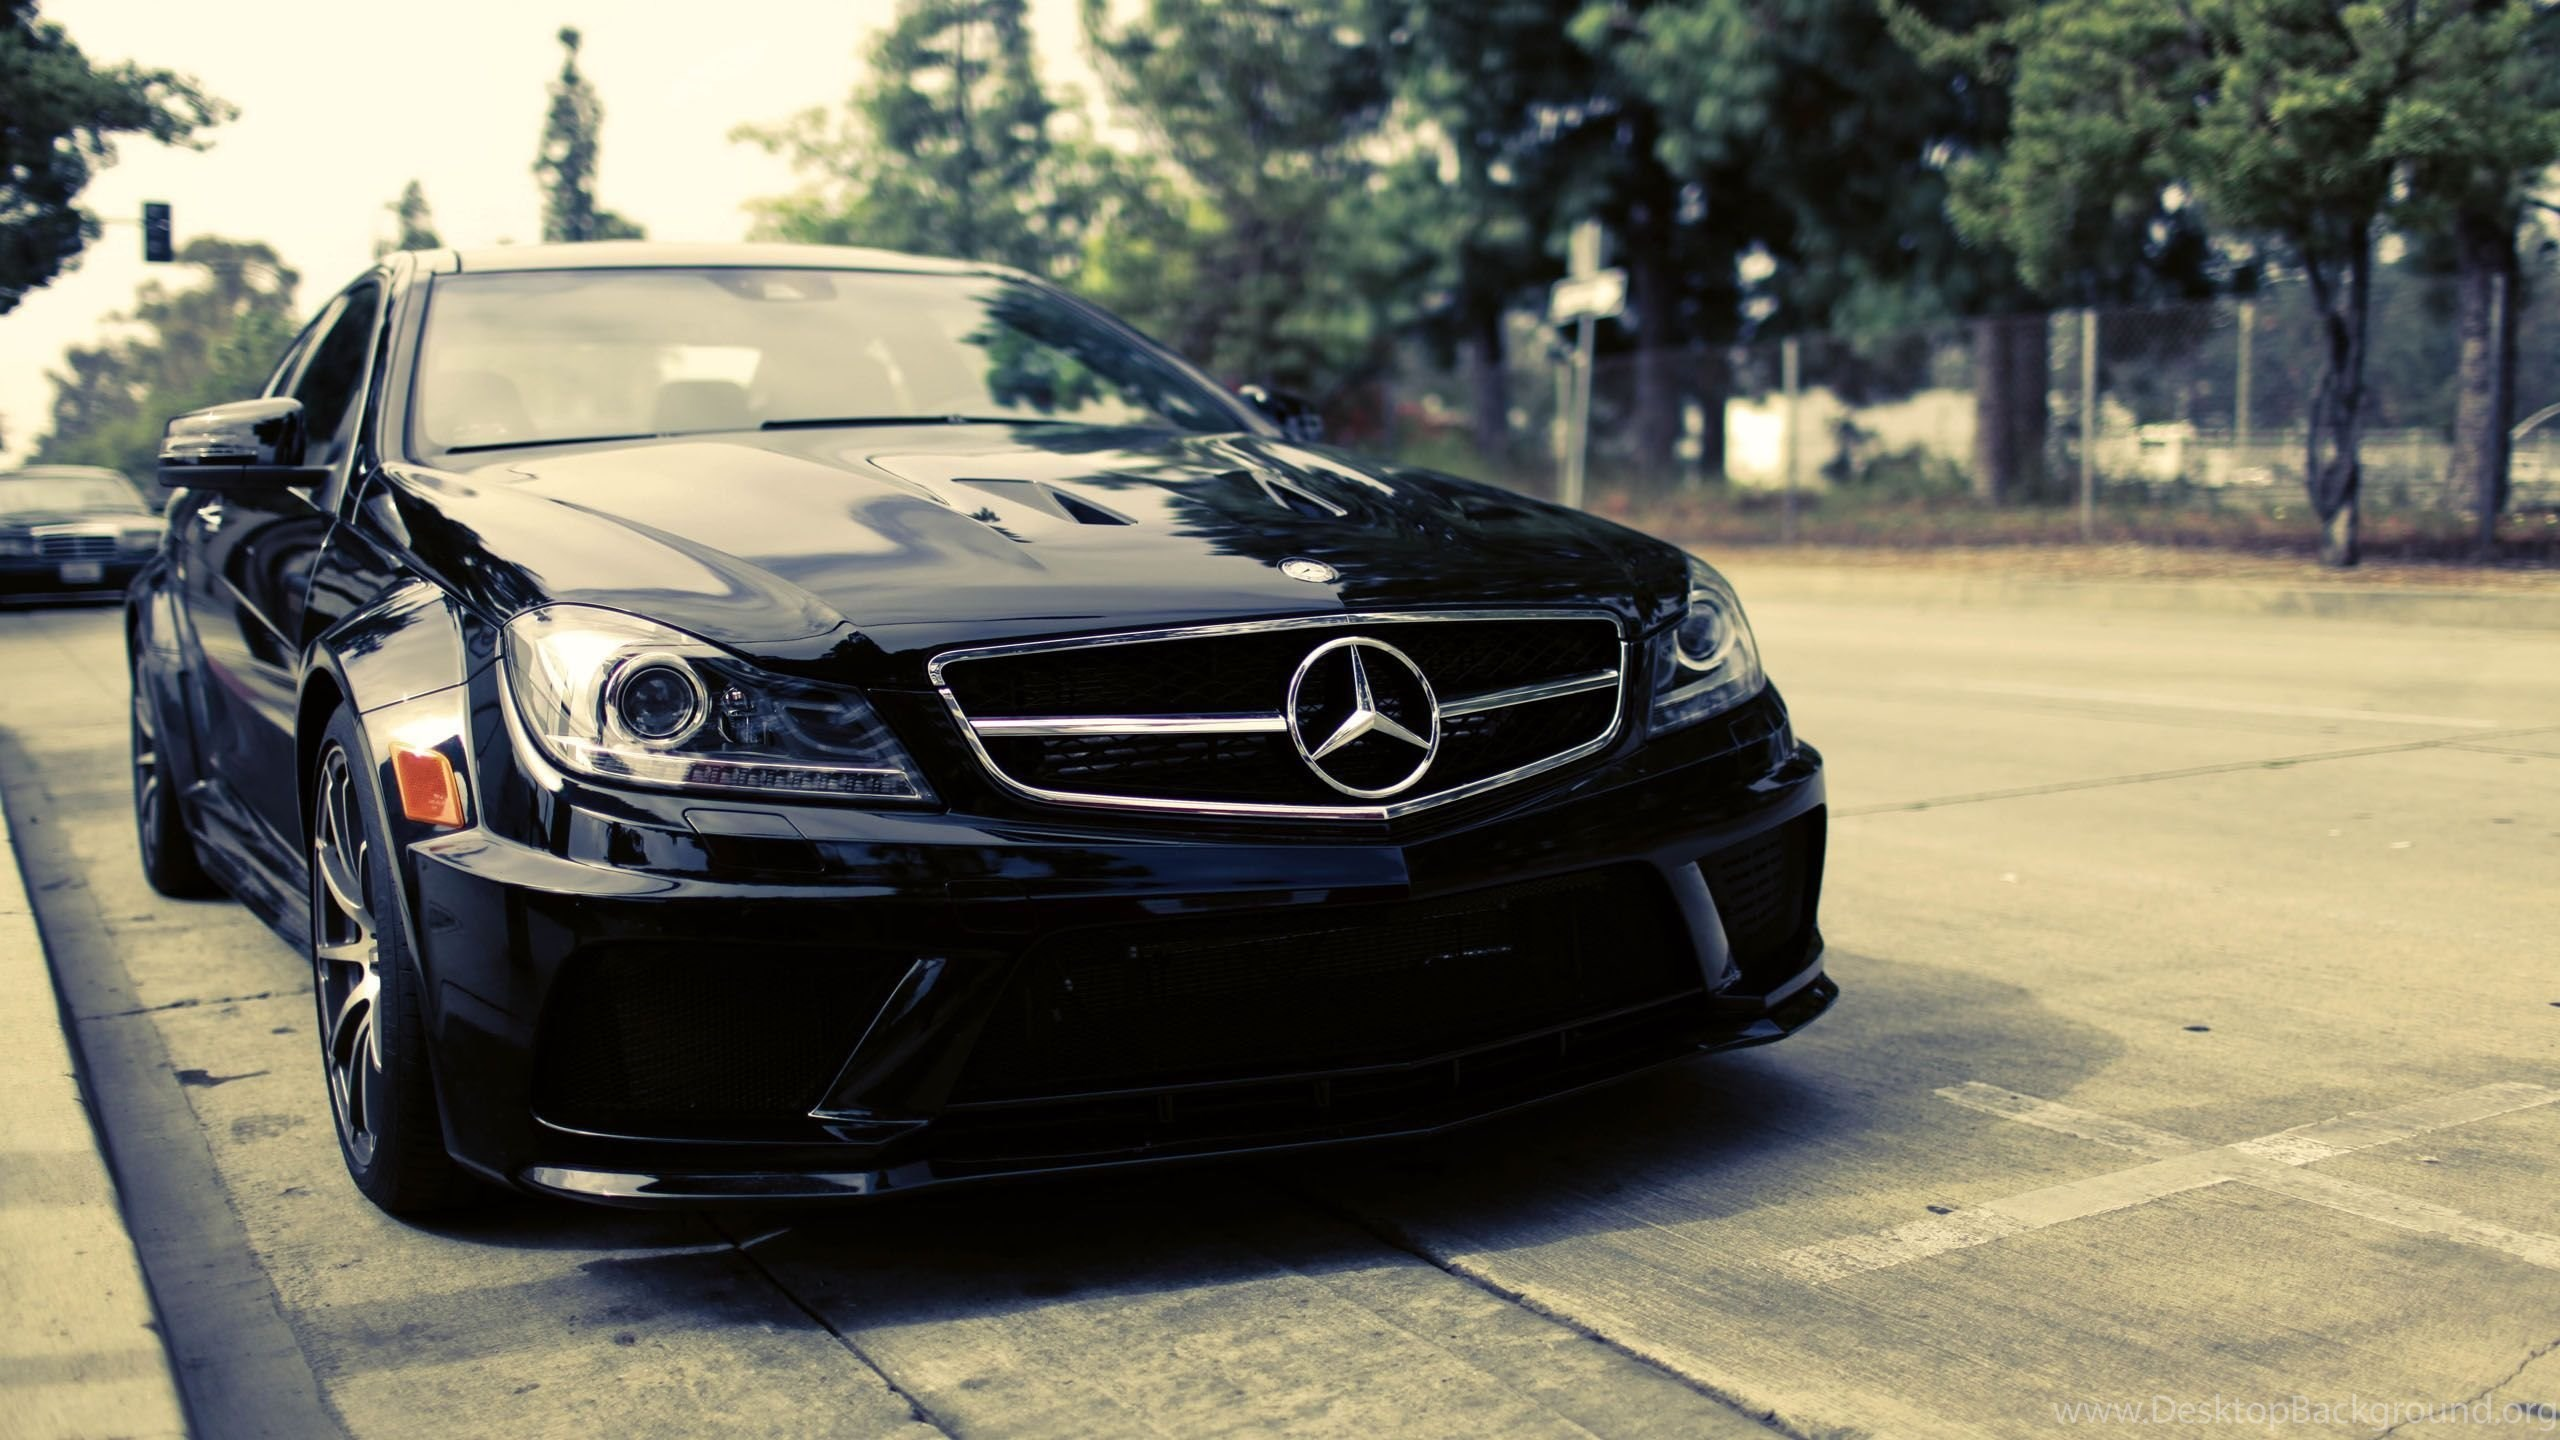 Mercedes Benz Black Car Wallpapers Hd Desktop Background